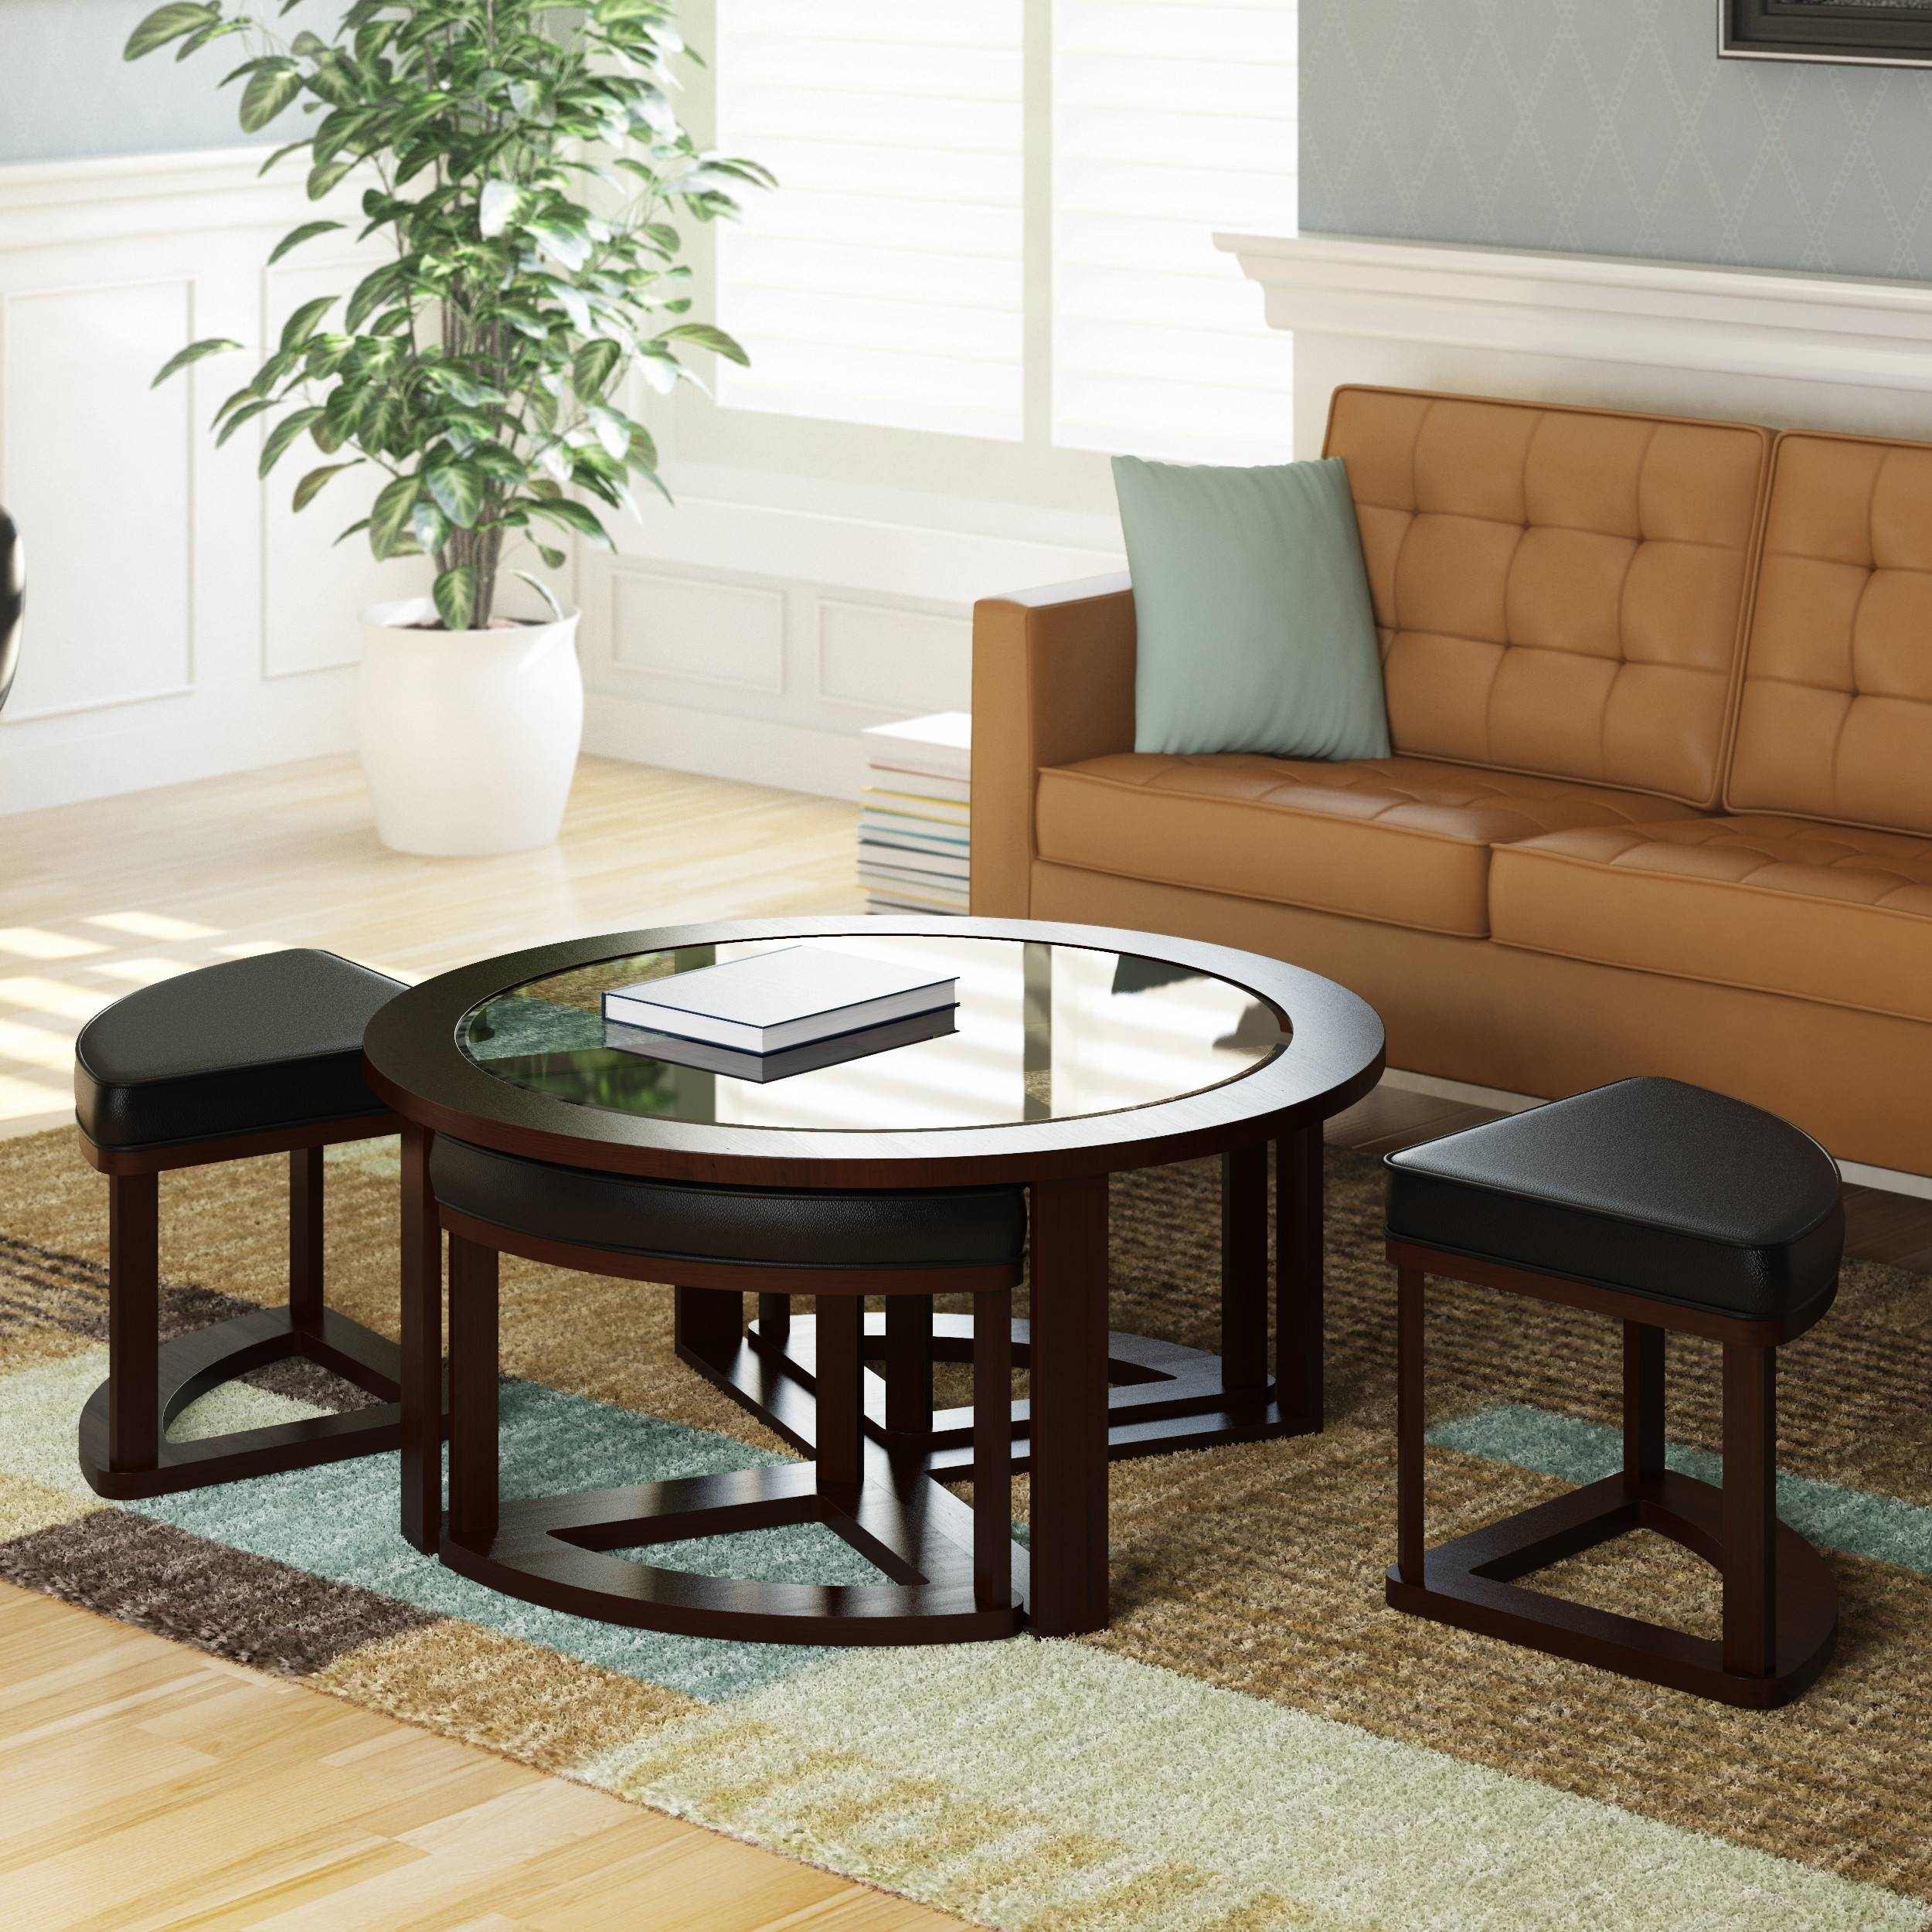 Furniture: Coffee Table With Nesting Stools Coffee Table With Stools Within Coffee Tables With Nesting Stools (View 6 of 30)